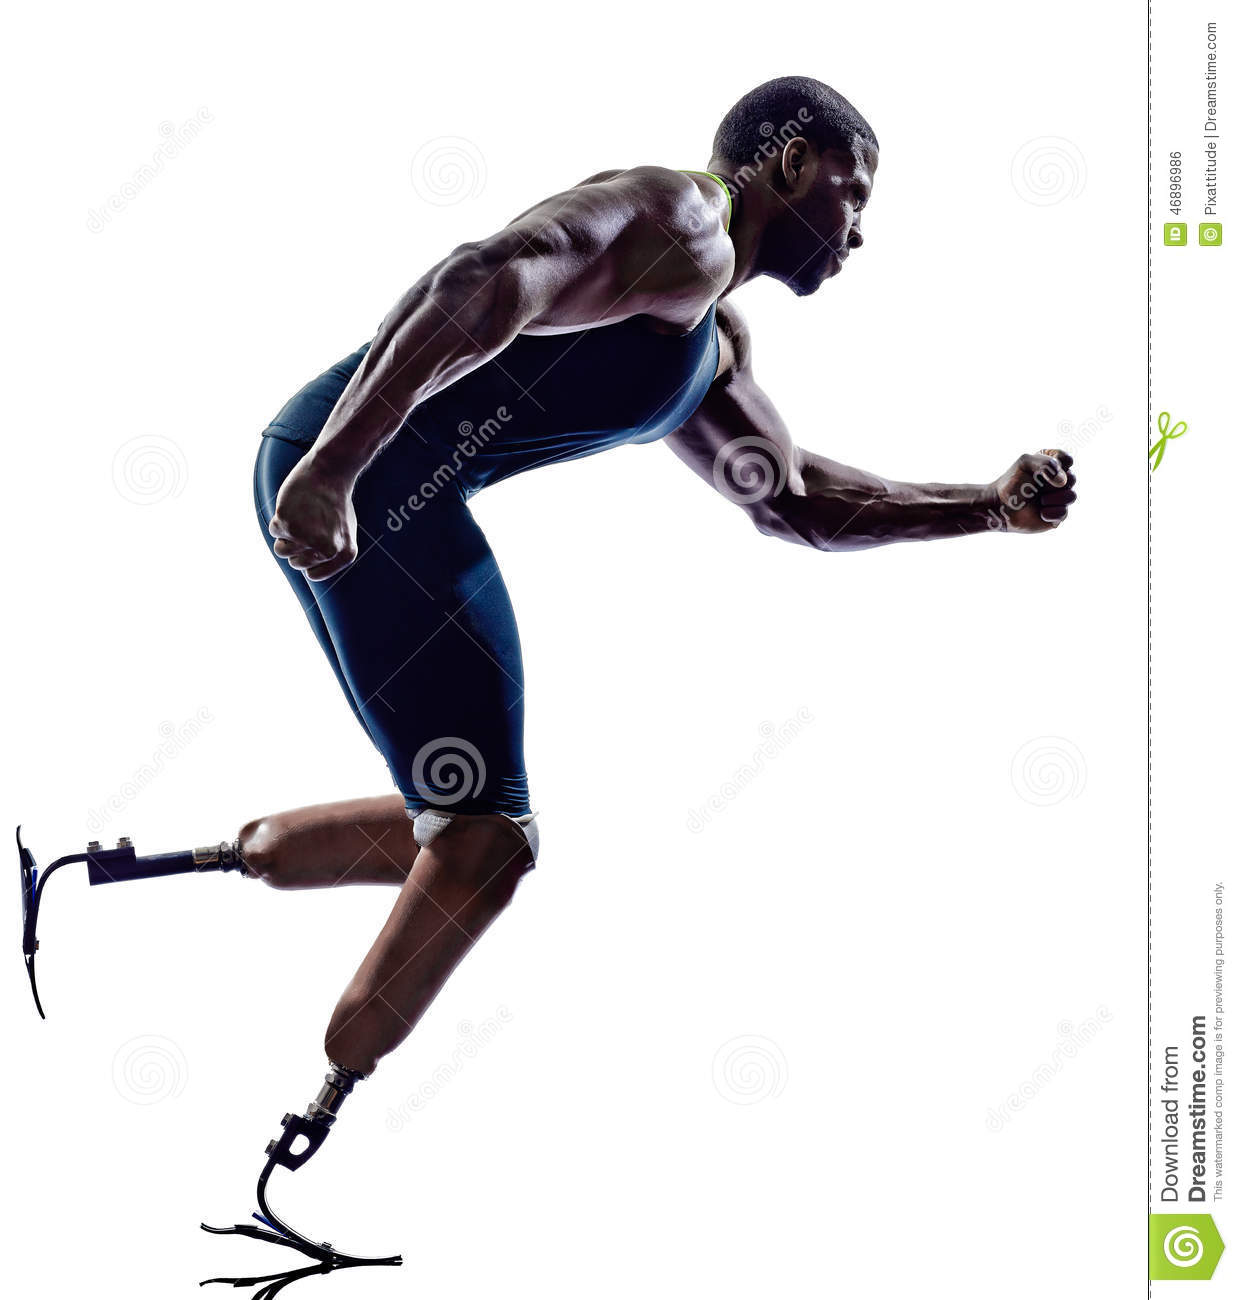 Handicapped Man Runners Sprinters With Legs Prosthesis